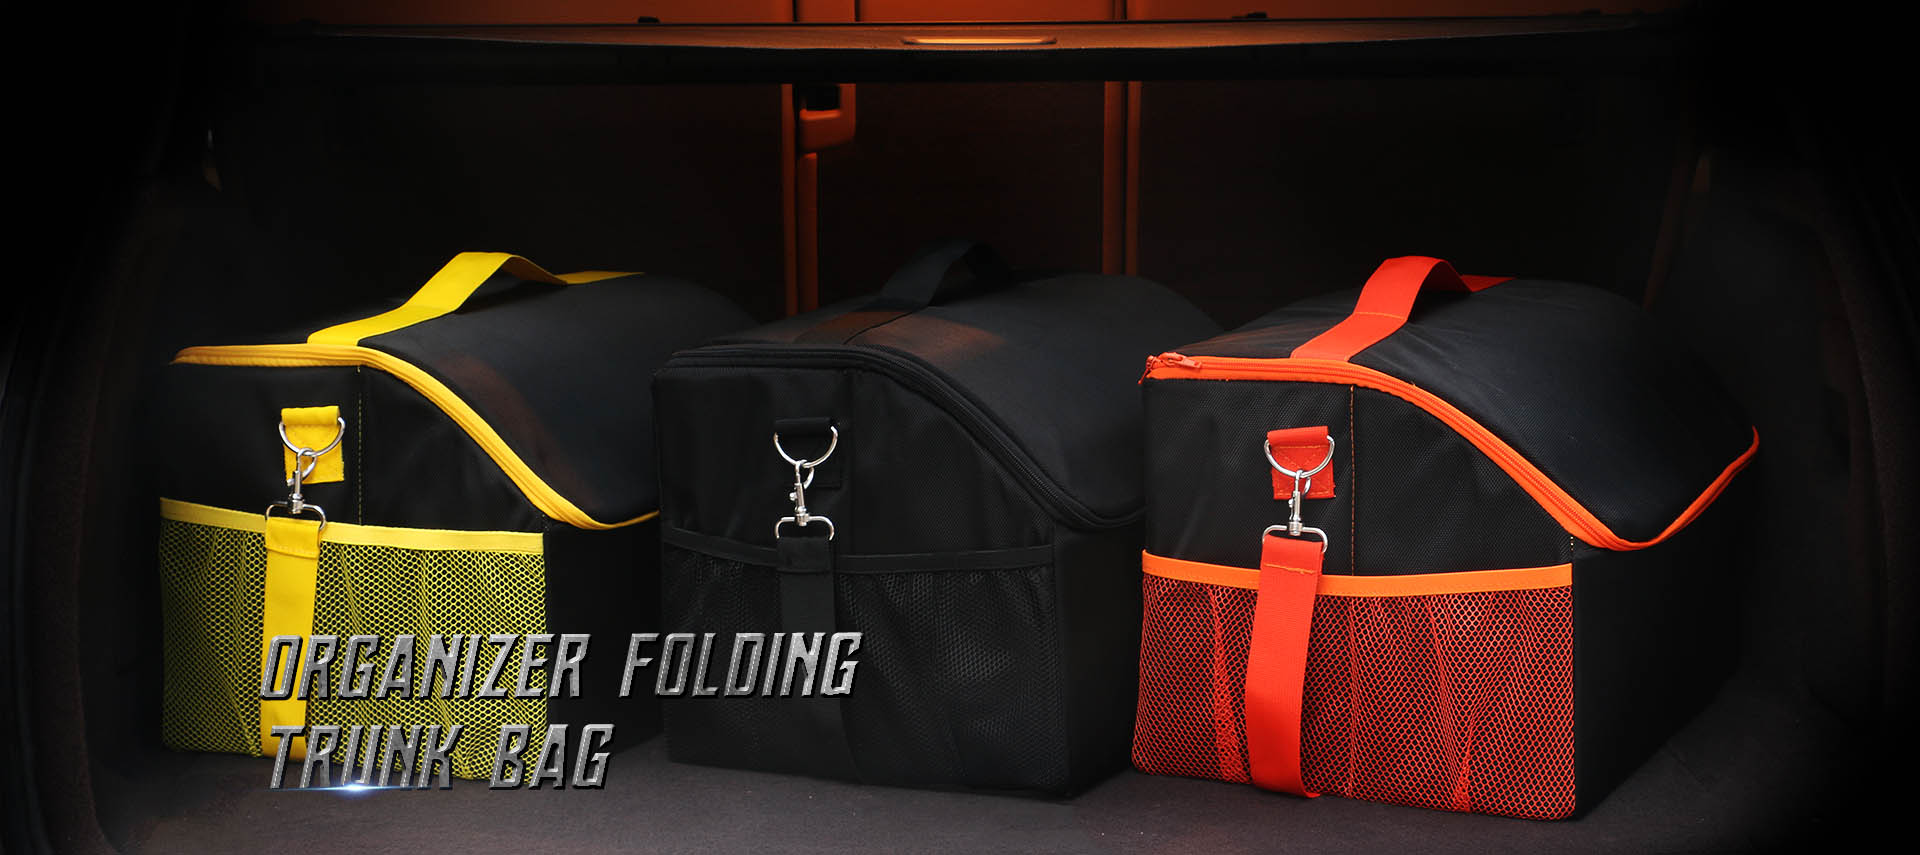 organizer Folding Trunk Bag